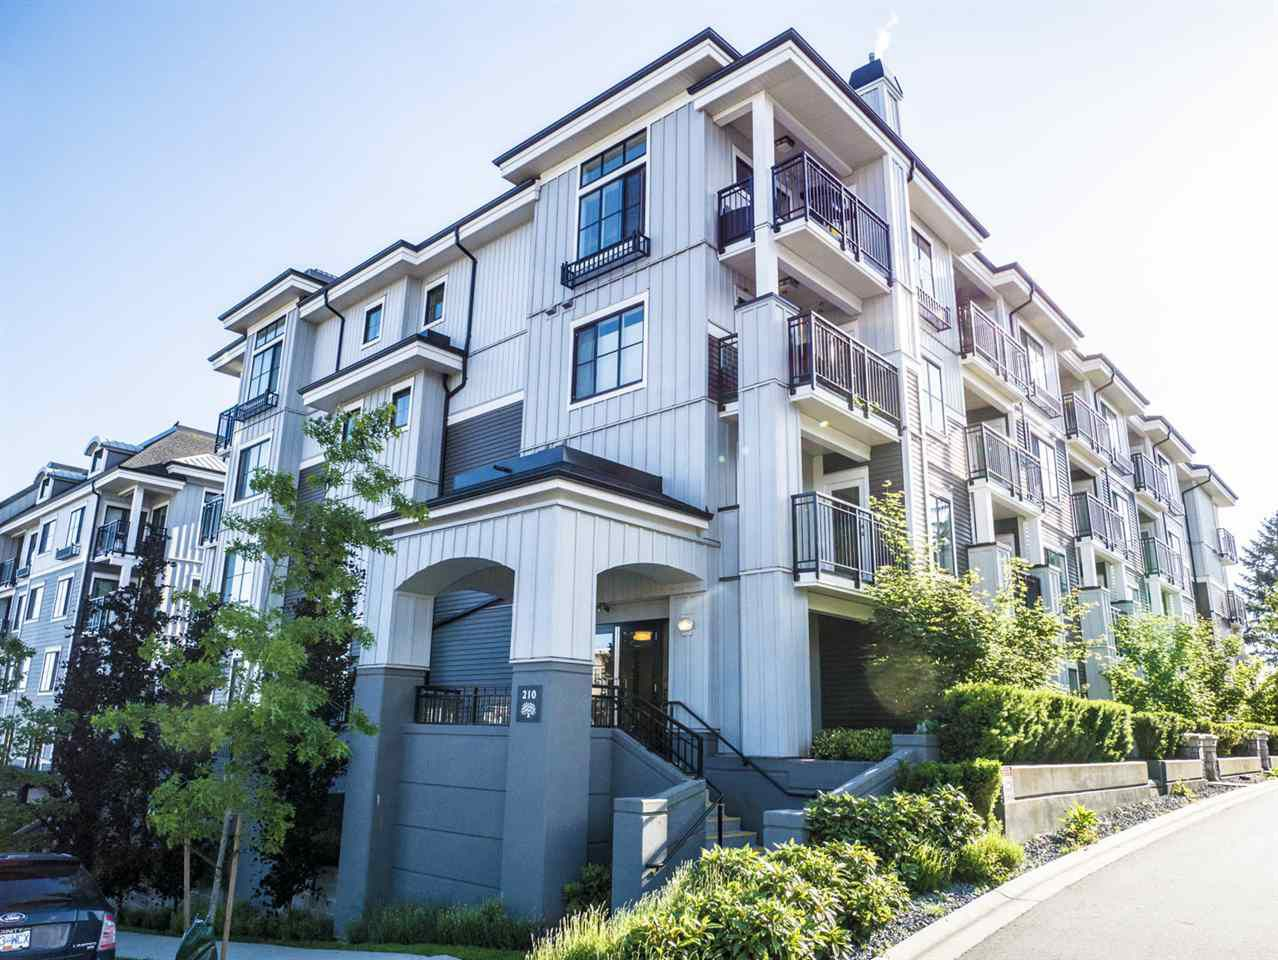 Main Photo: 108 210 LEBLEU Street in Coquitlam: Maillardville Condo for sale : MLS®# R2174151